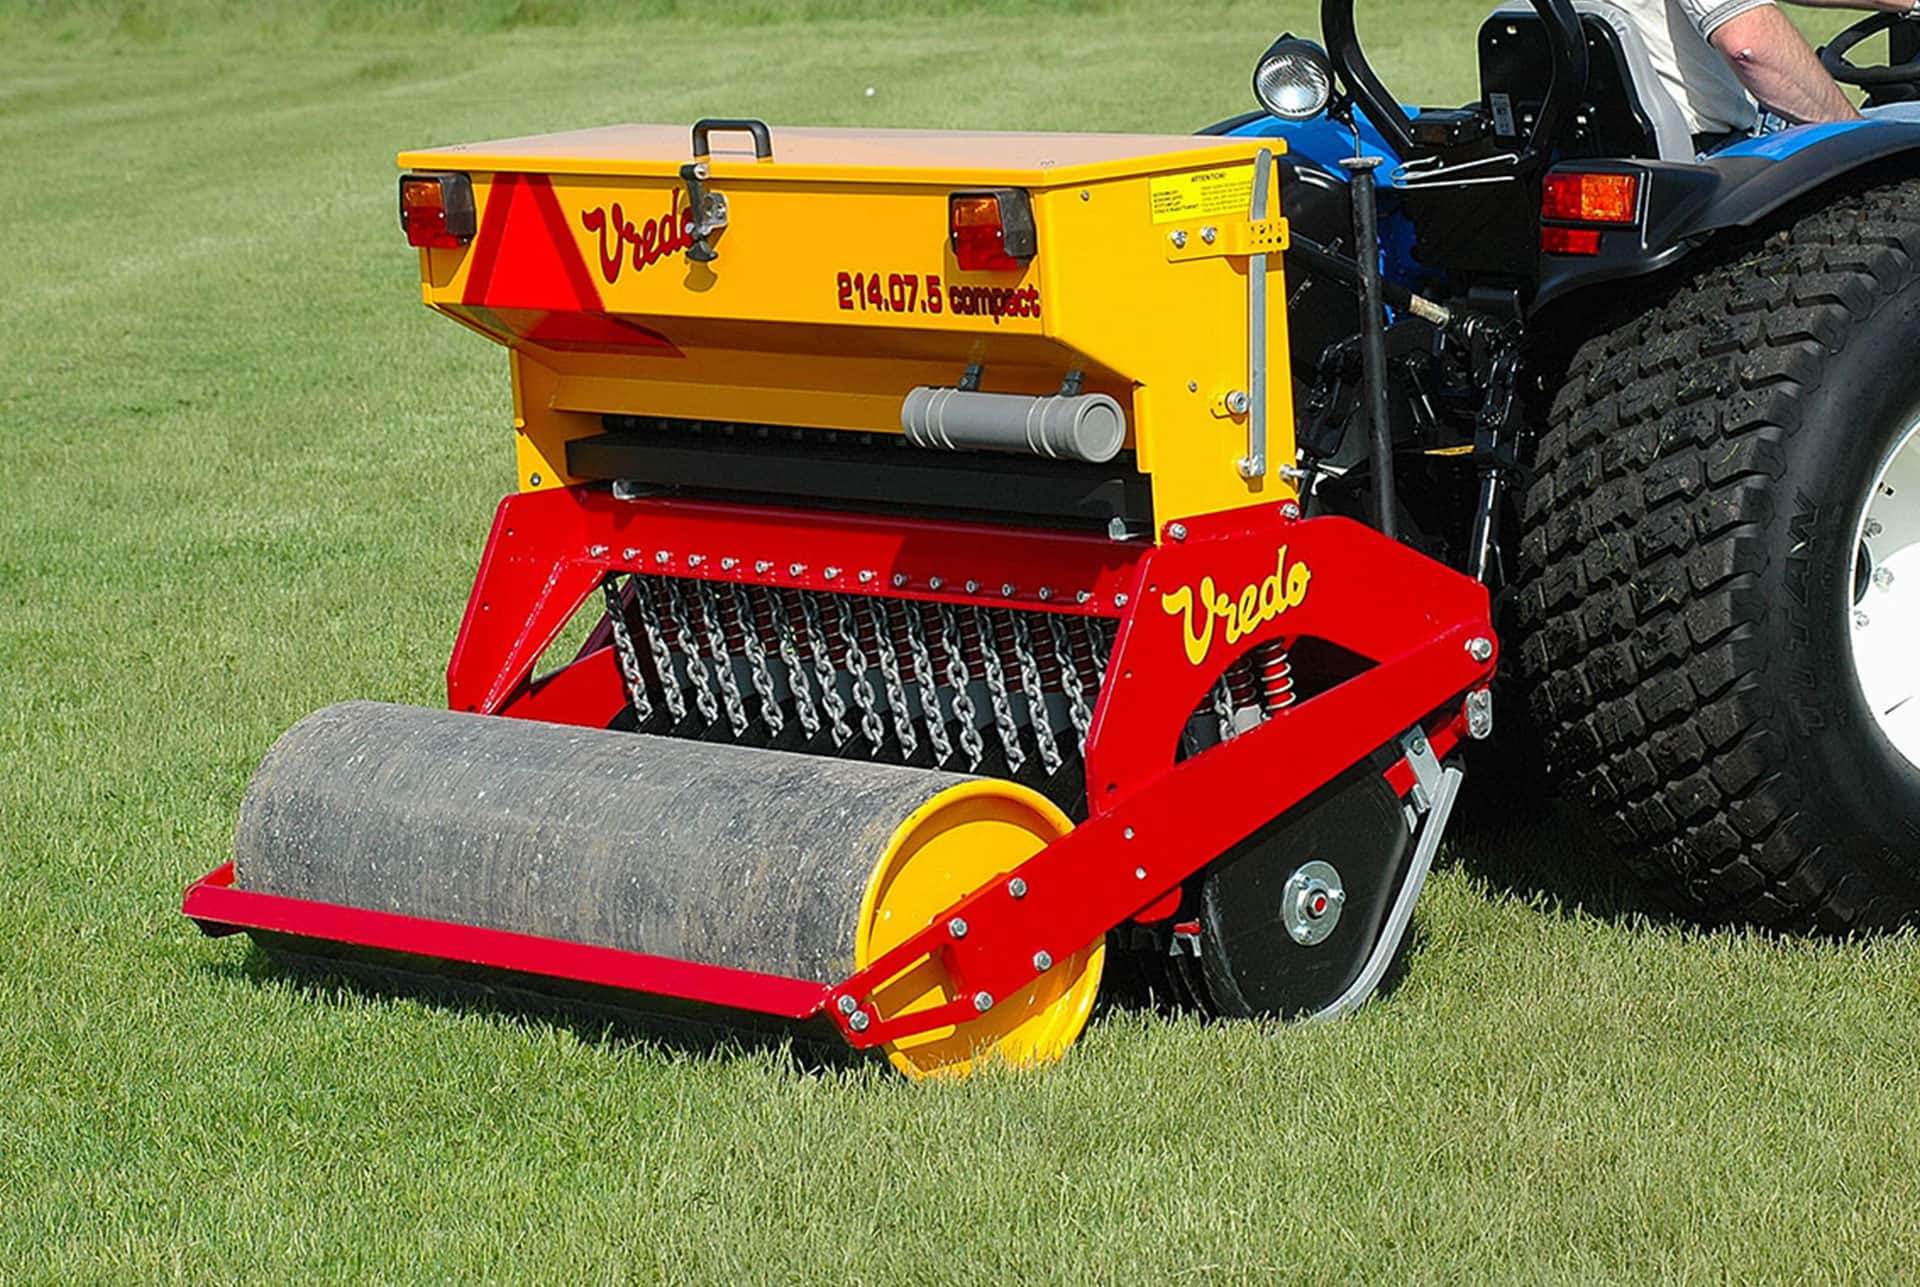 Compact Tractor Seeder : Campey turf care systems vredo compact series